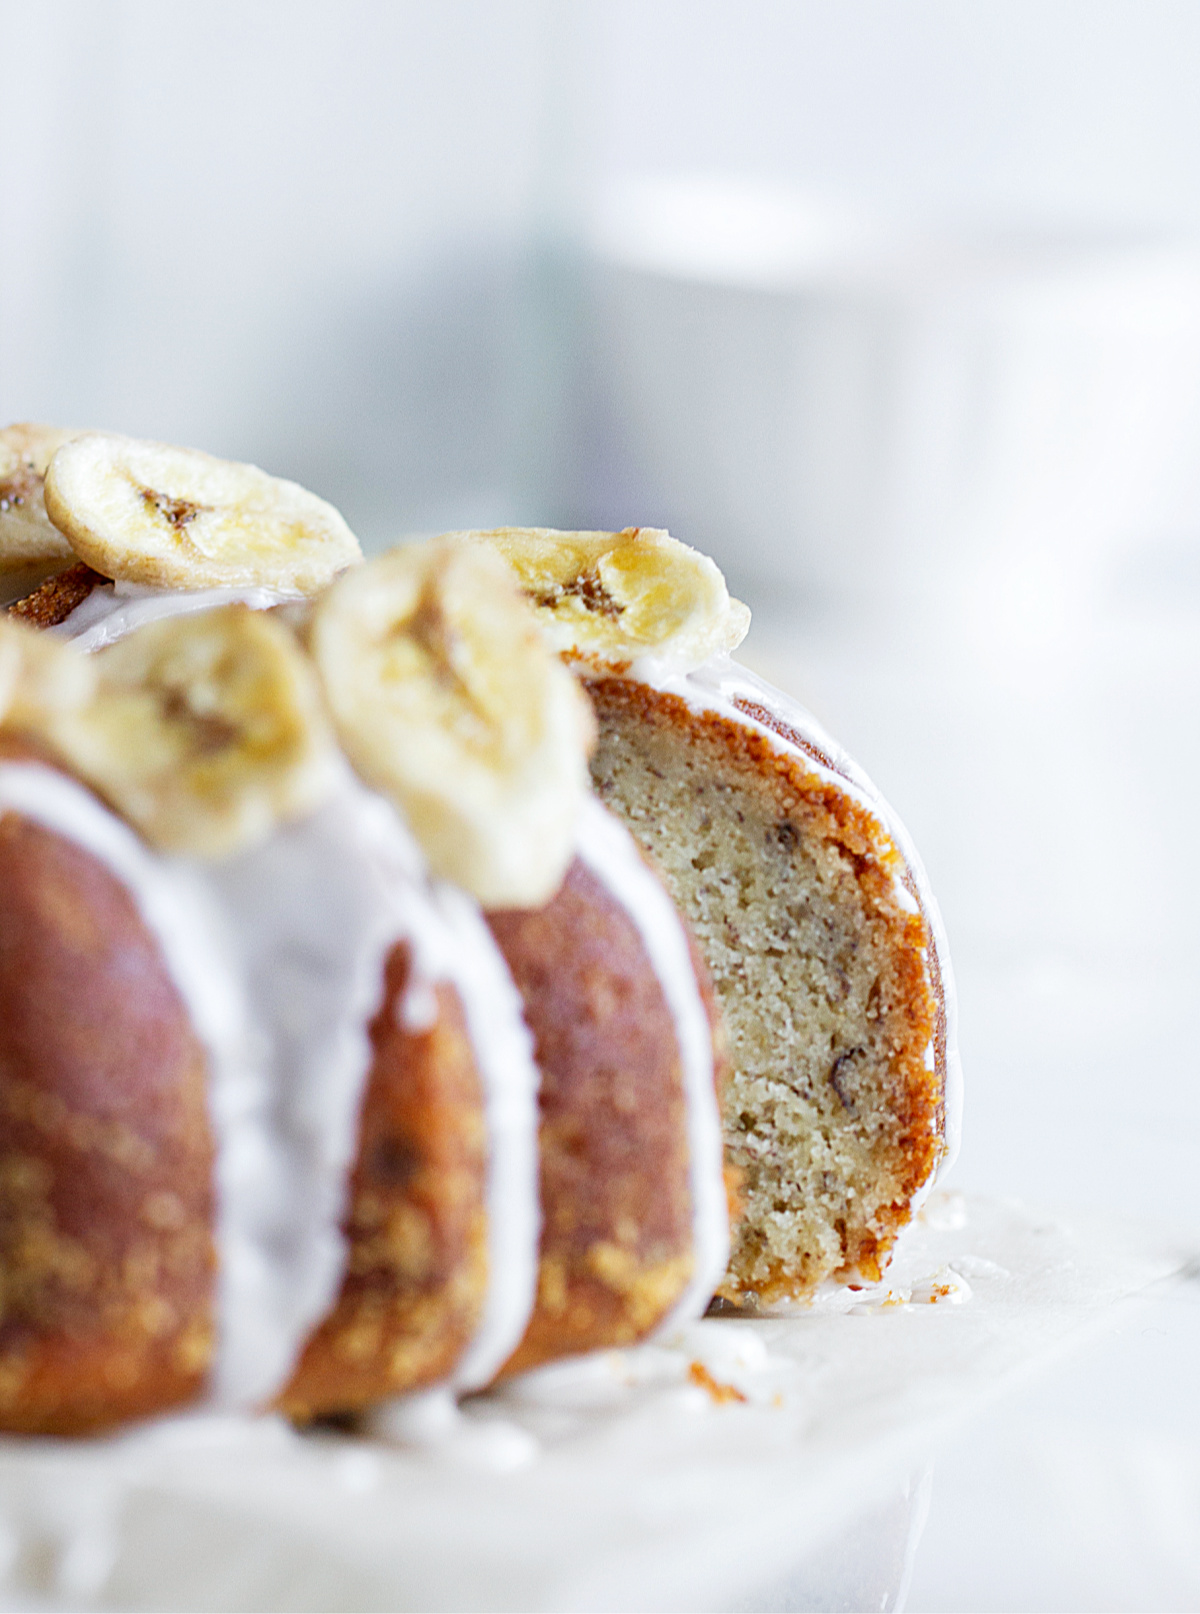 Focus on Slice of banana cake pulled out from whole bundt, blurred white background